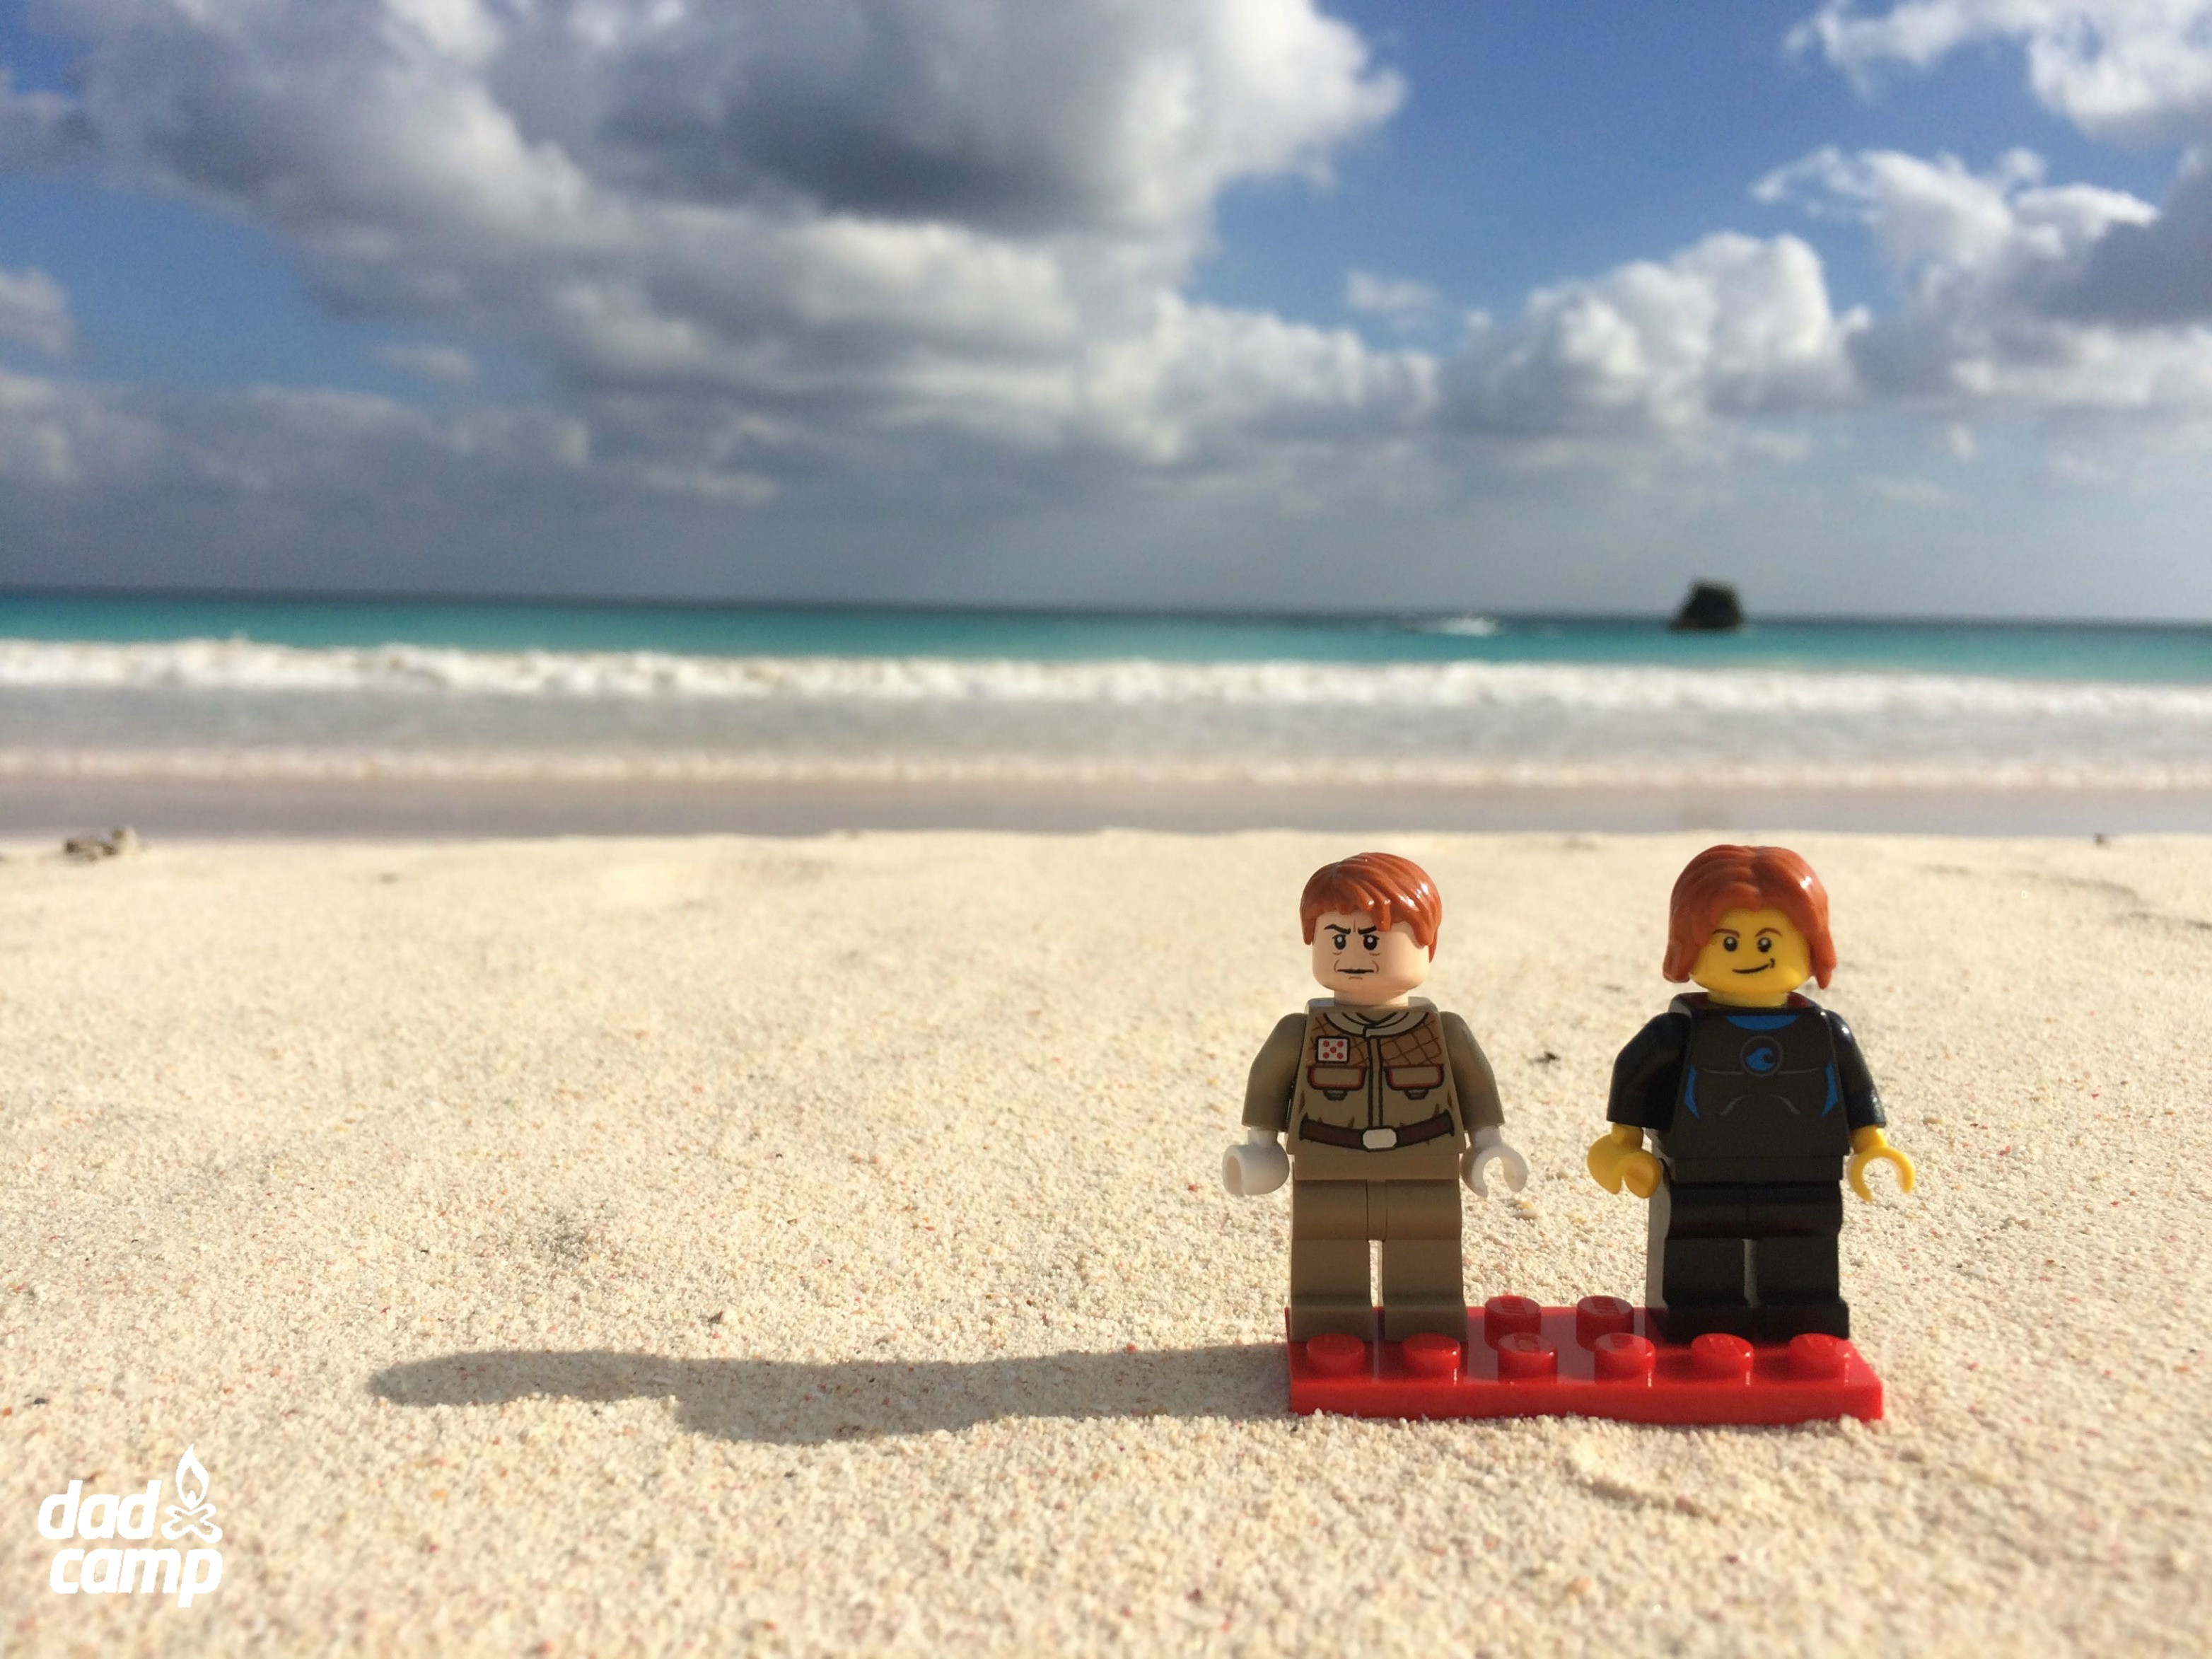 LEGO boys on the beach